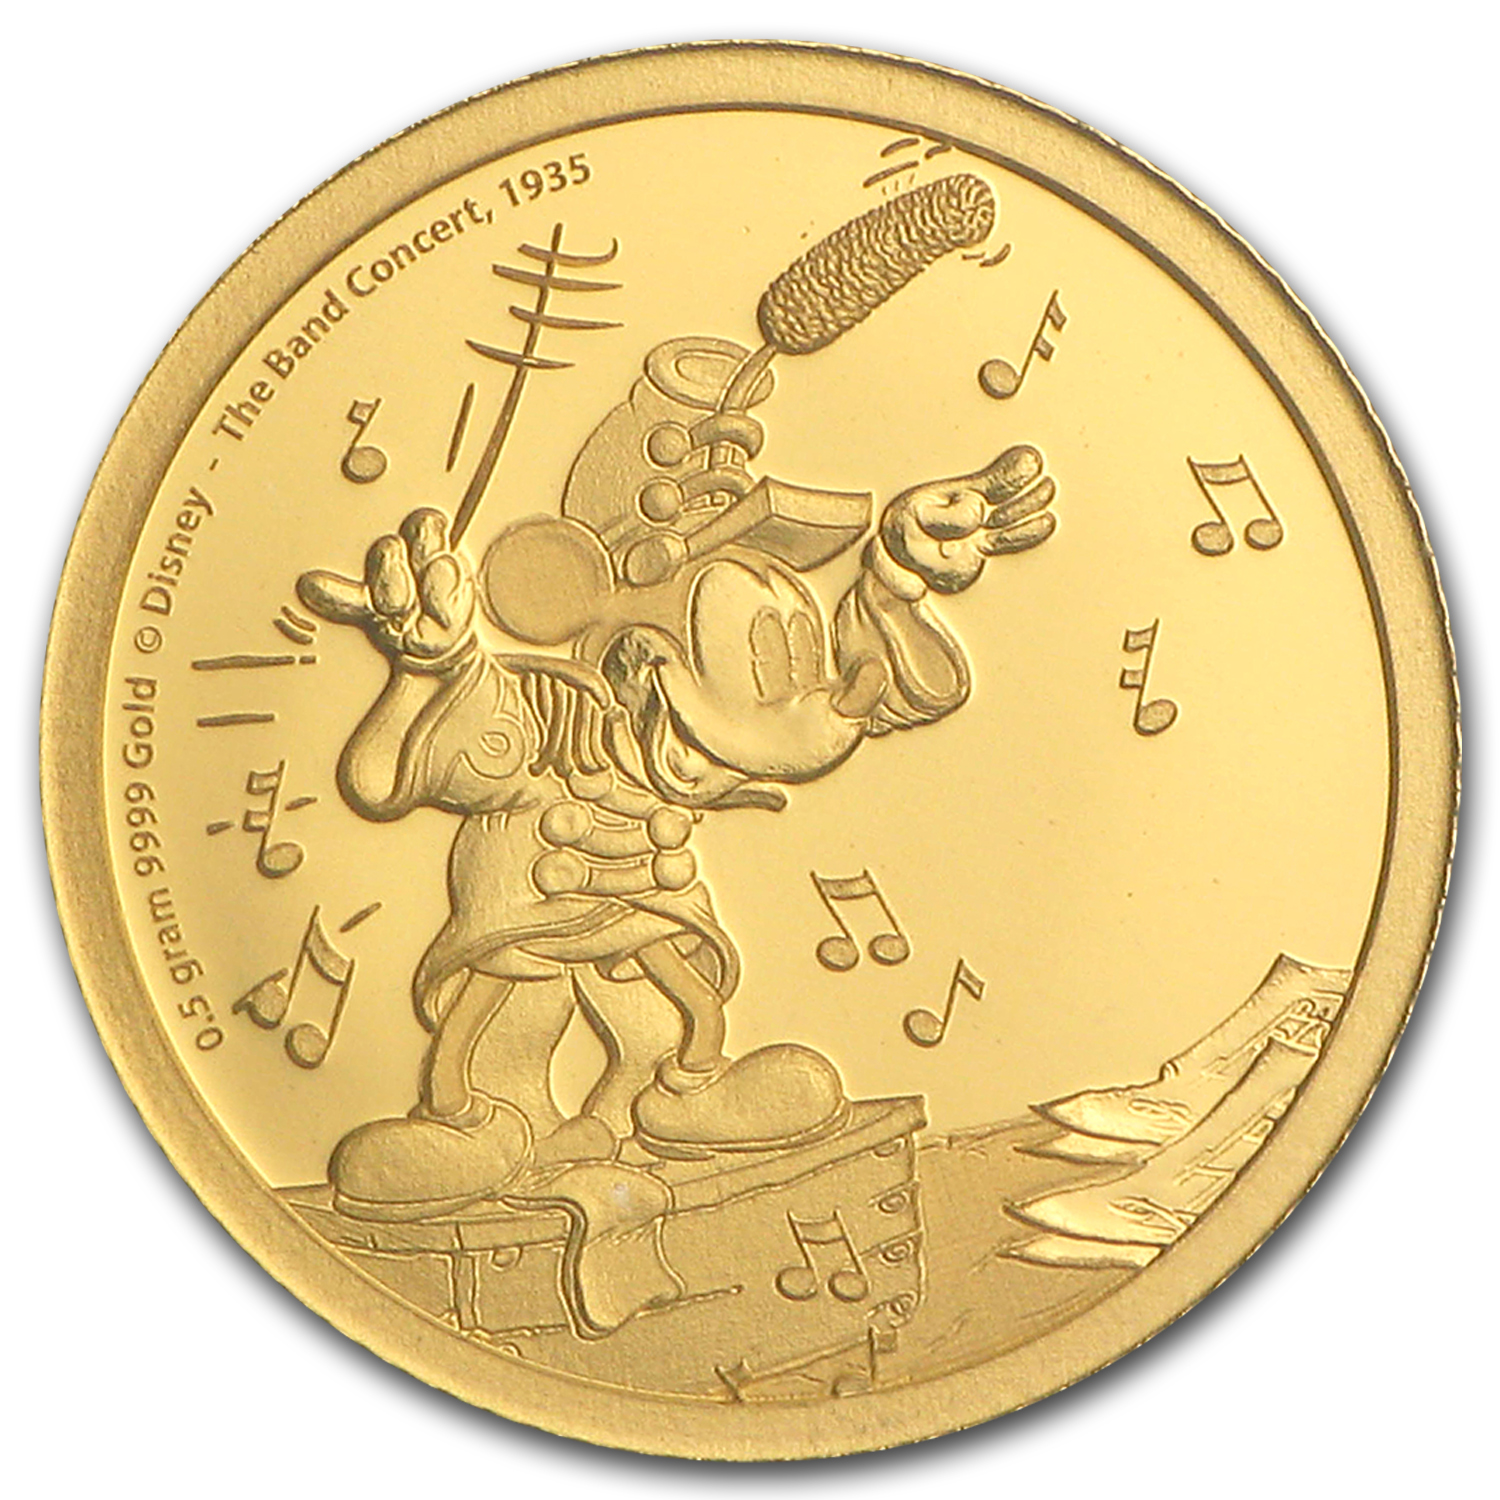 2016 Niue 1/2 g Gold $2.50 Mickey Through the Ages: Band Concert